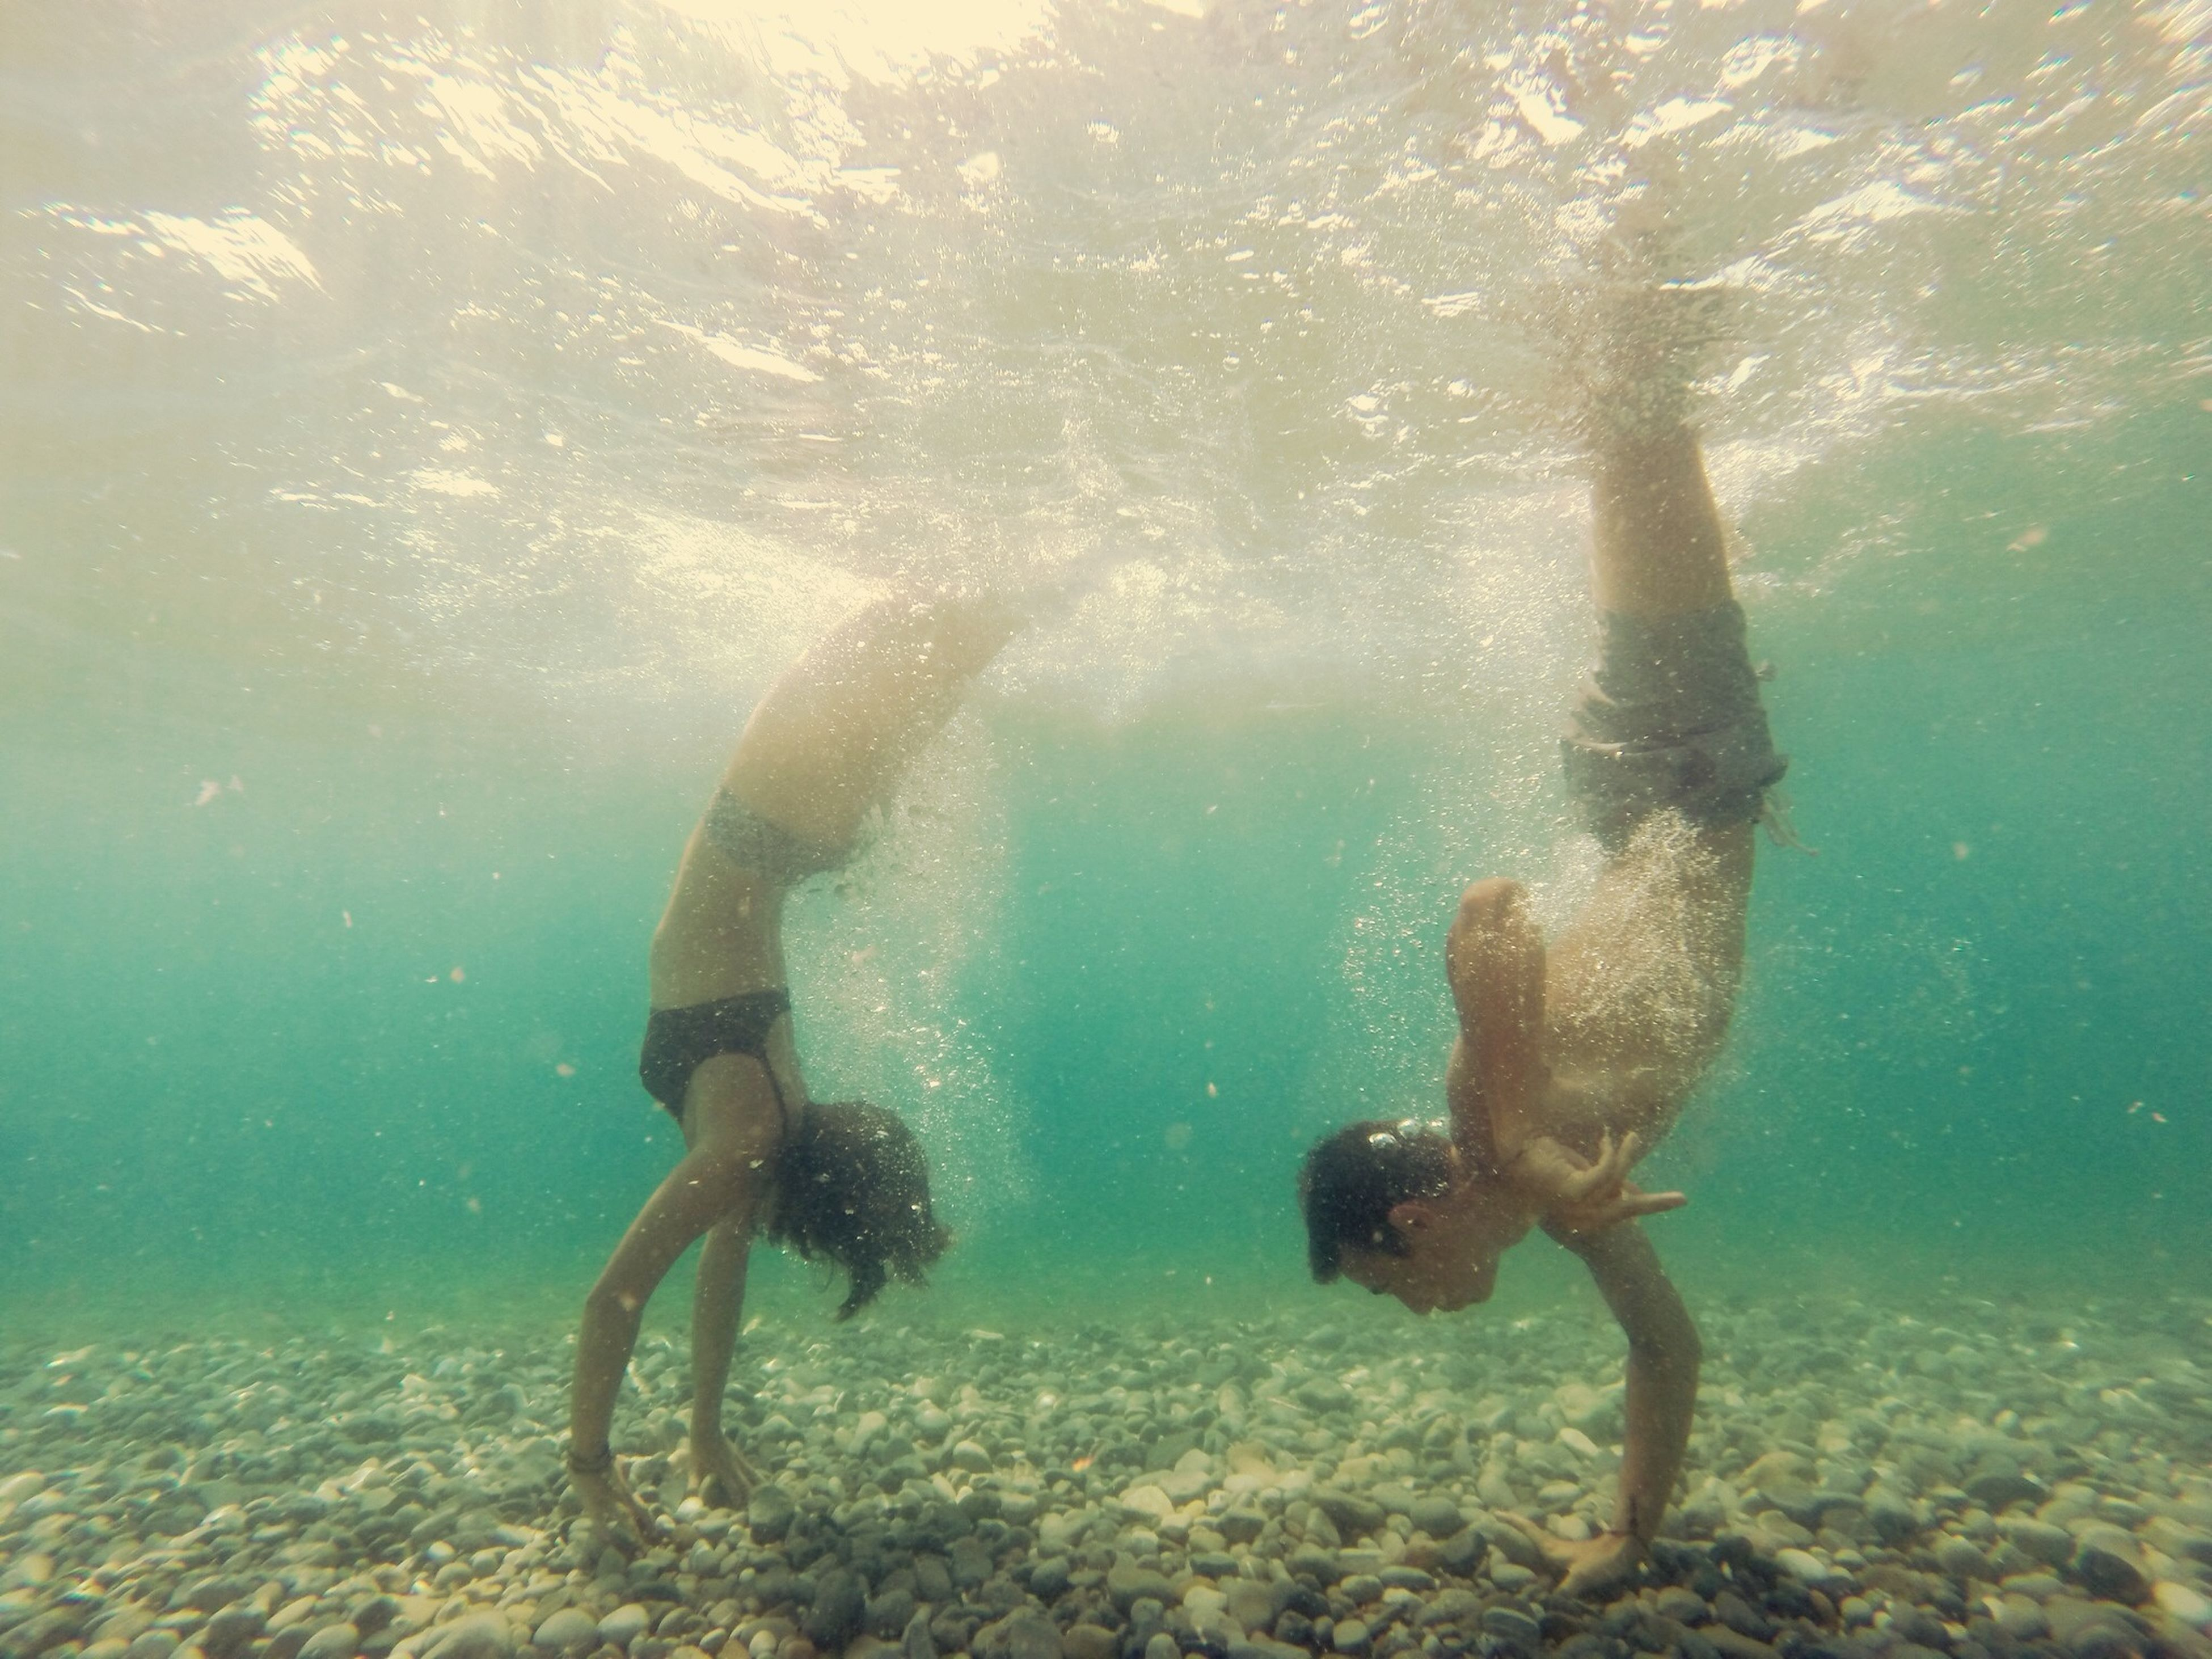 water, lifestyles, swimming, leisure activity, sea, underwater, animal themes, men, full length, motion, high angle view, one animal, sunlight, vacations, nature, blue, day, shirtless